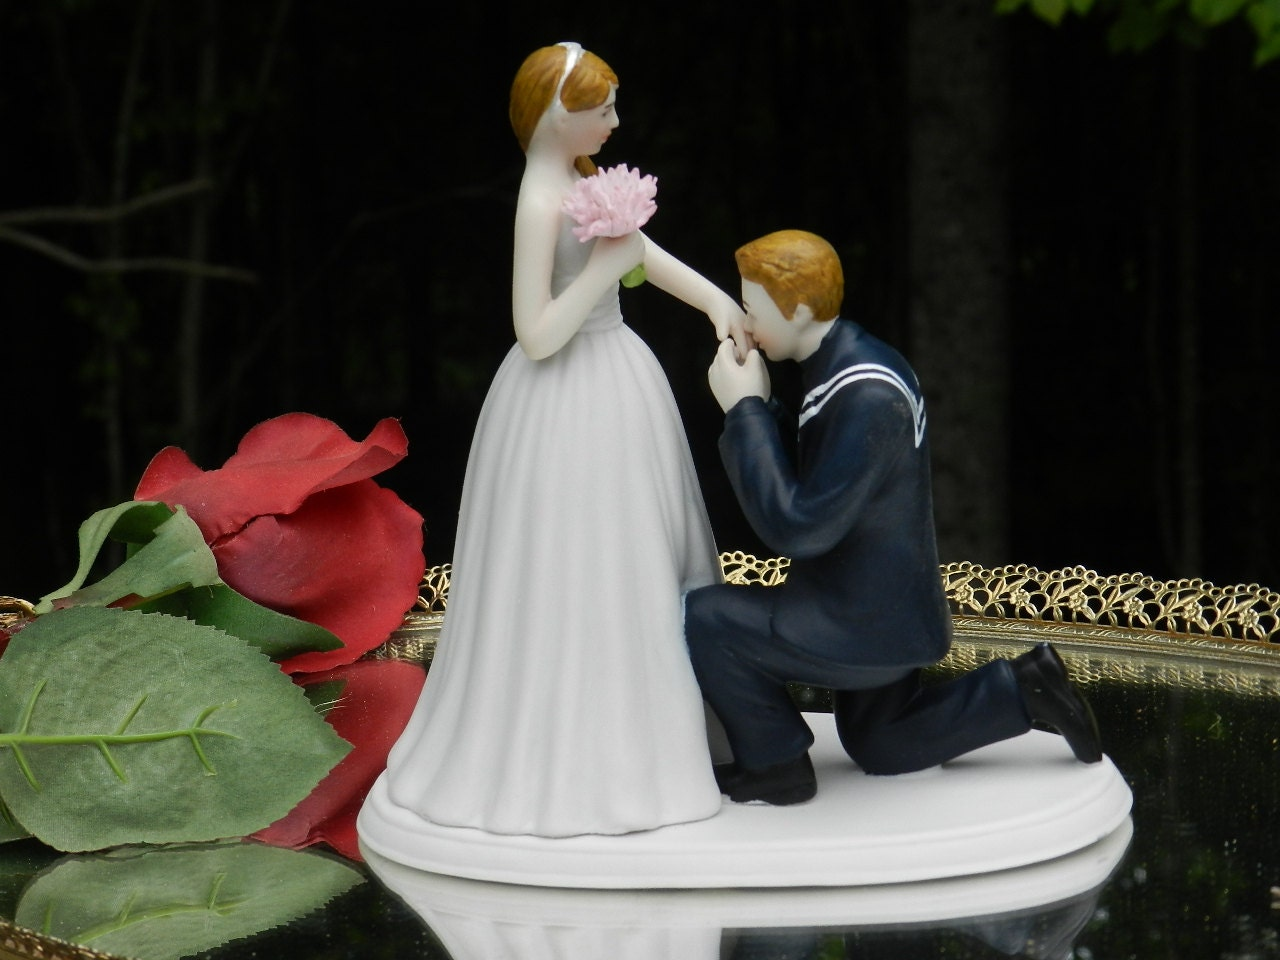 us navy wedding cake toppers usn navy sailor prince wedding cake topper 21518